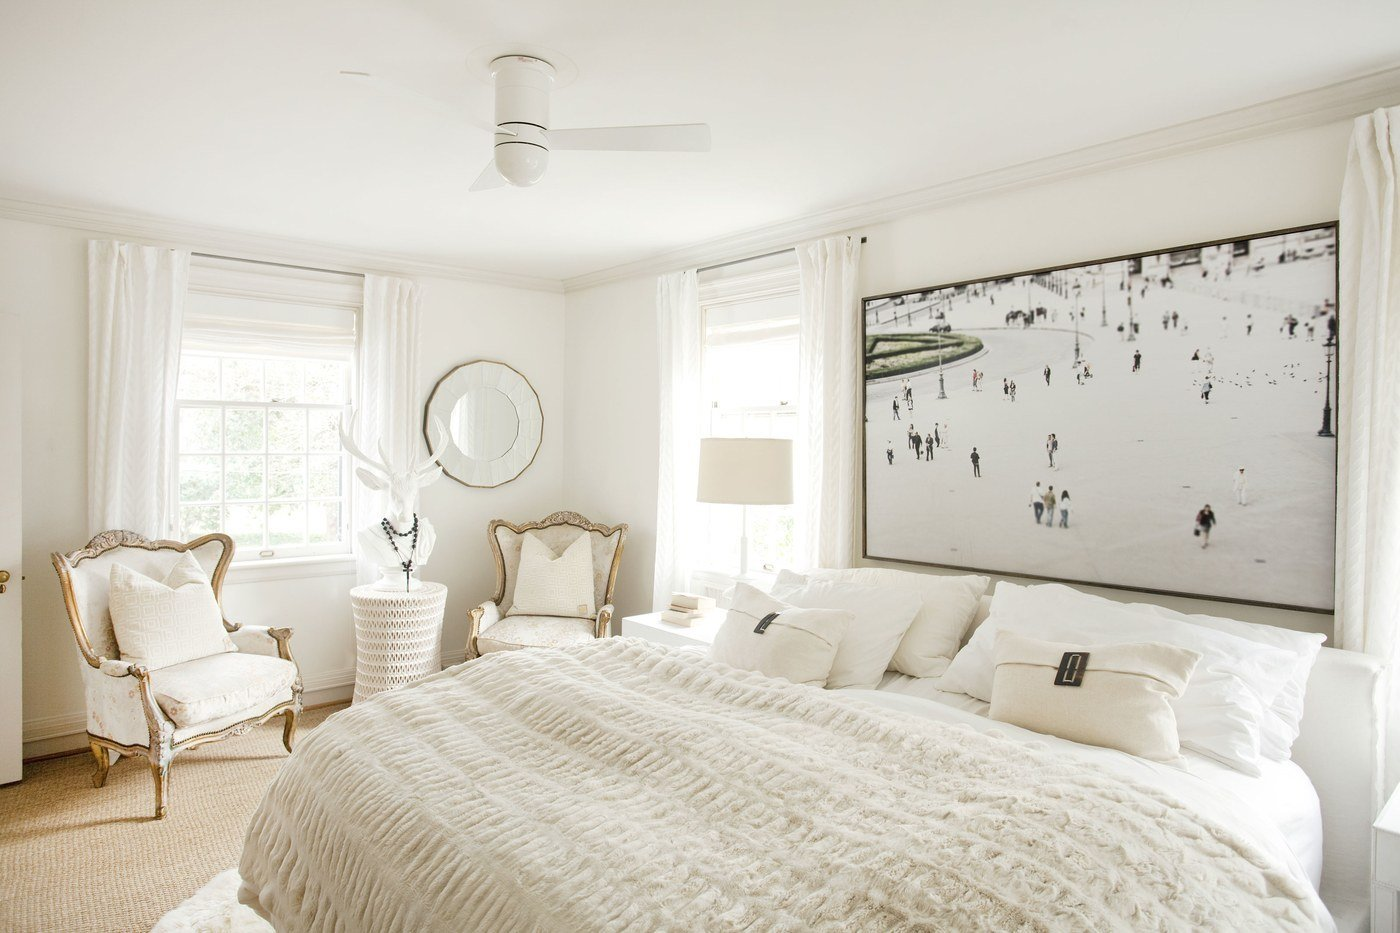 Best Monochromatic Bedroom Of Your Dreams In 6 Quick Steps With Pictures